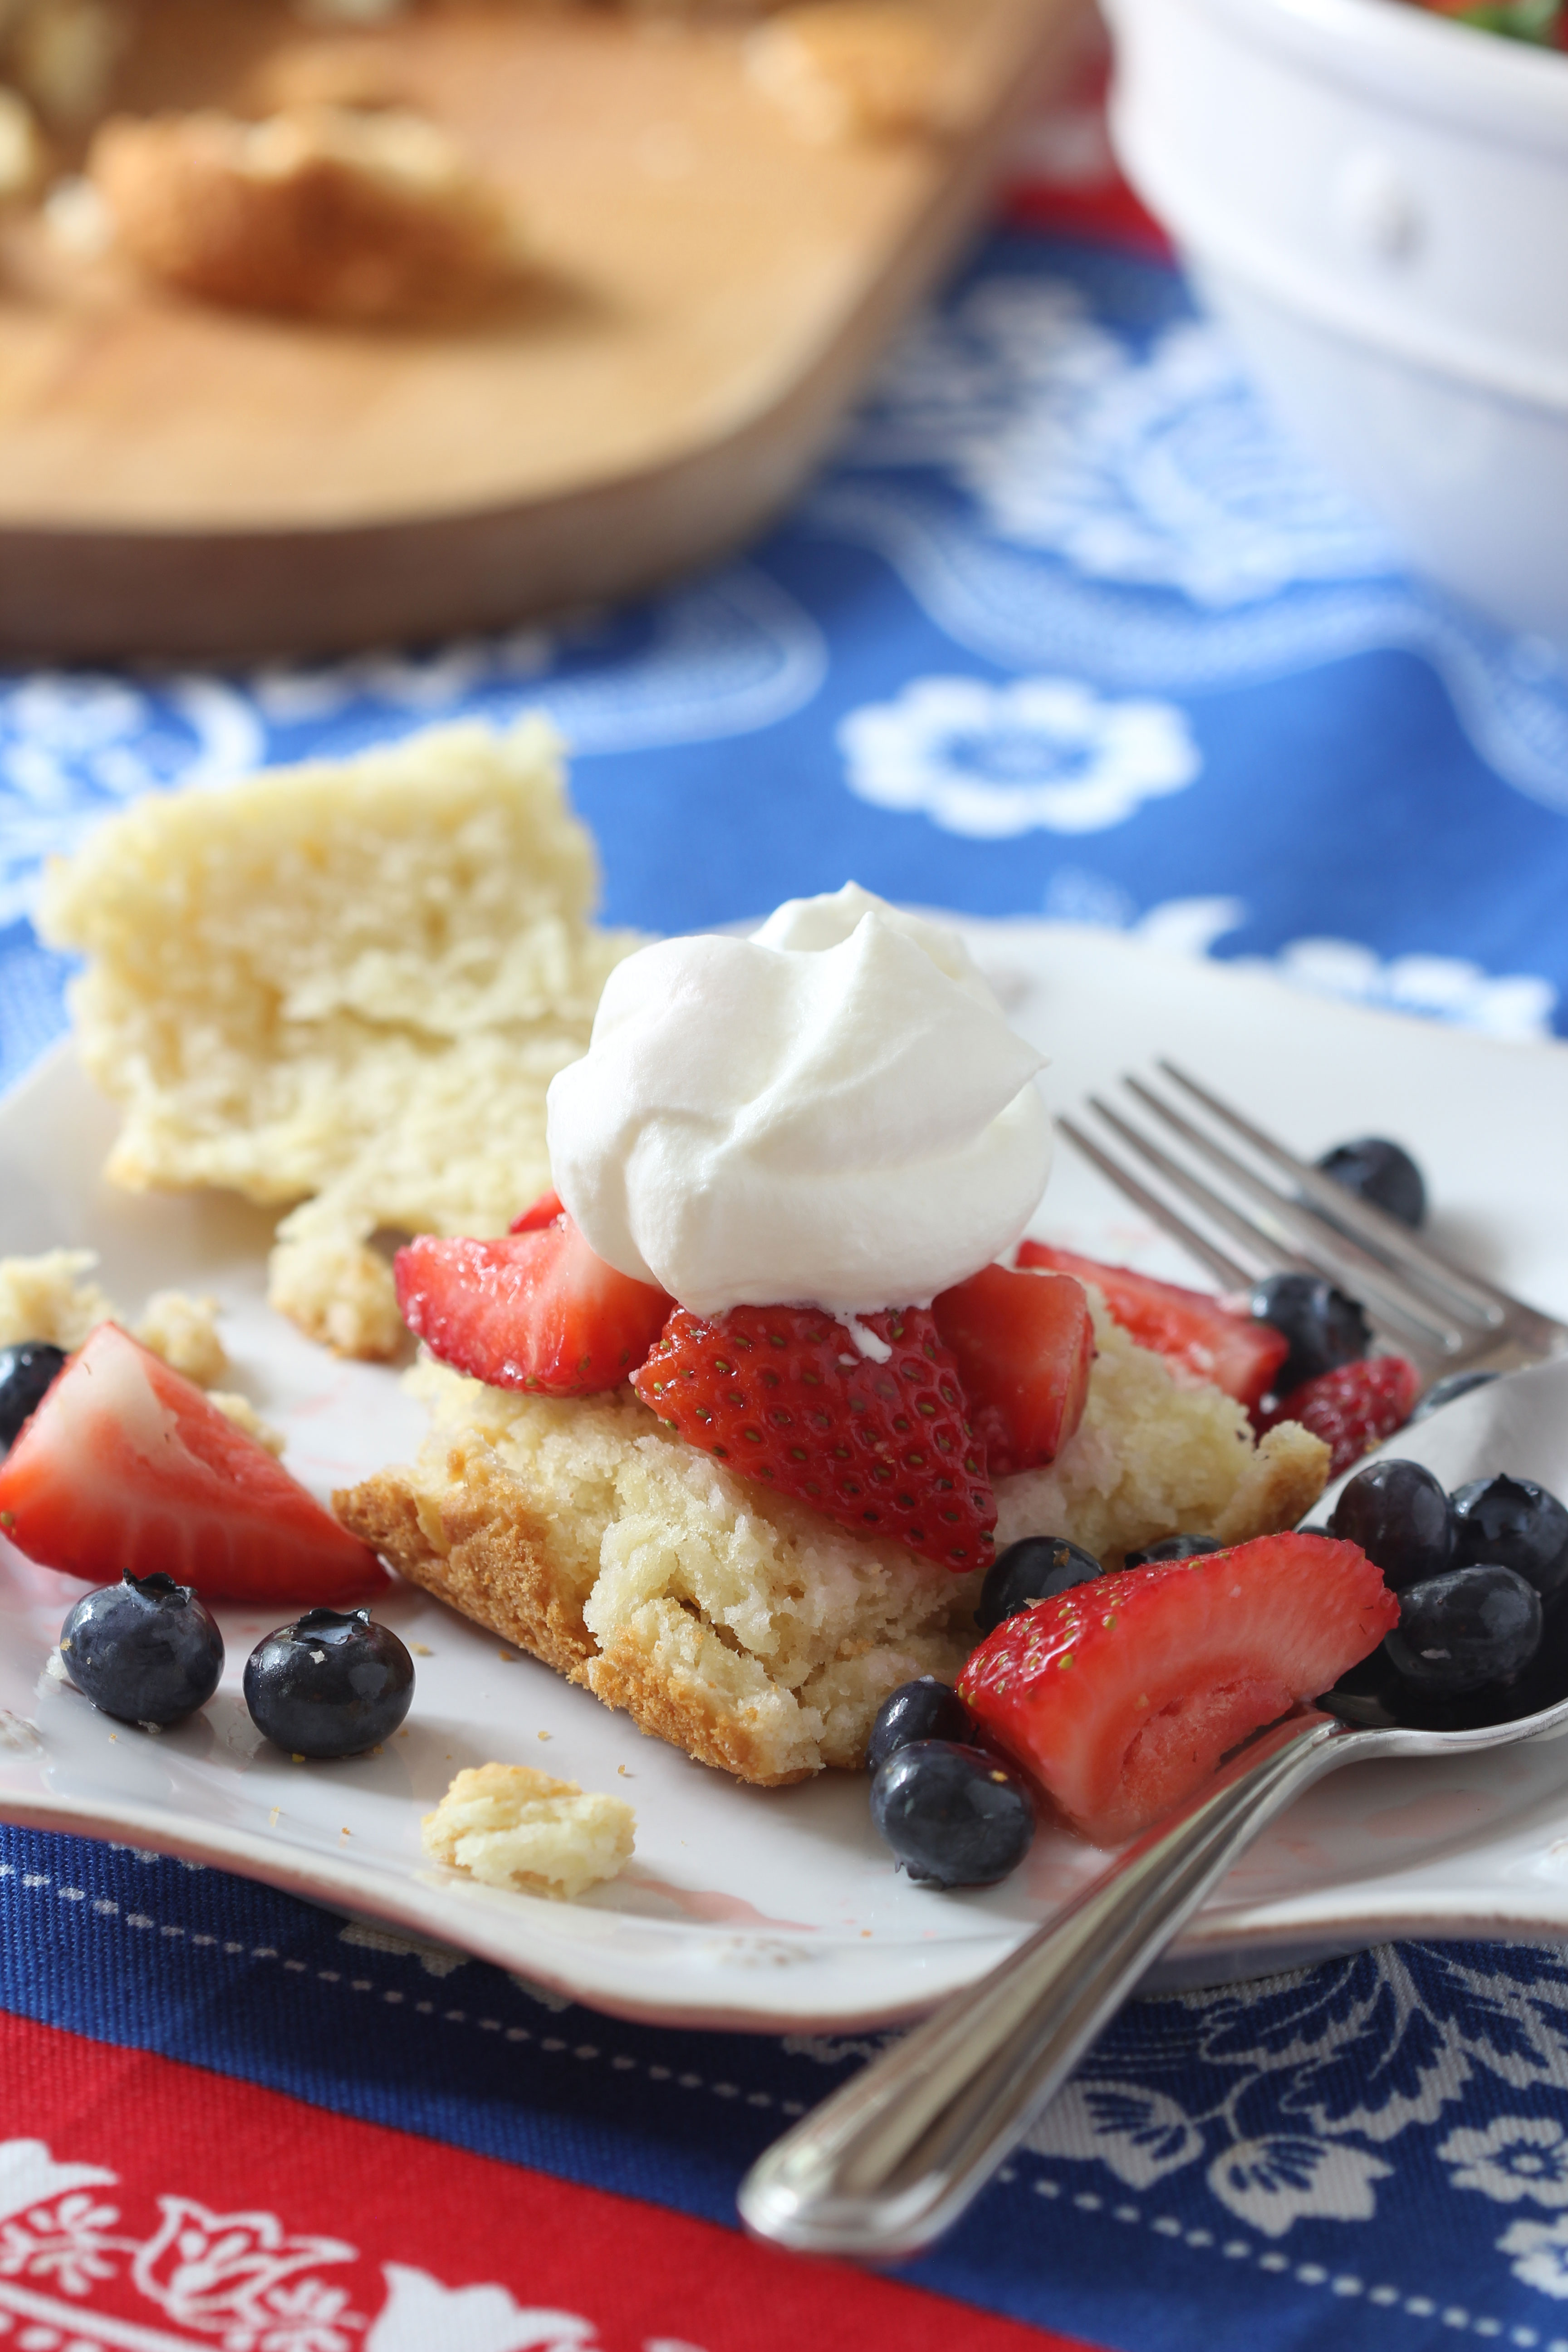 Looking for a red, white and blue dessert that is also super easy to make and delicious? Ridgely Brode has what you are looking for on Ridgely's Radar.